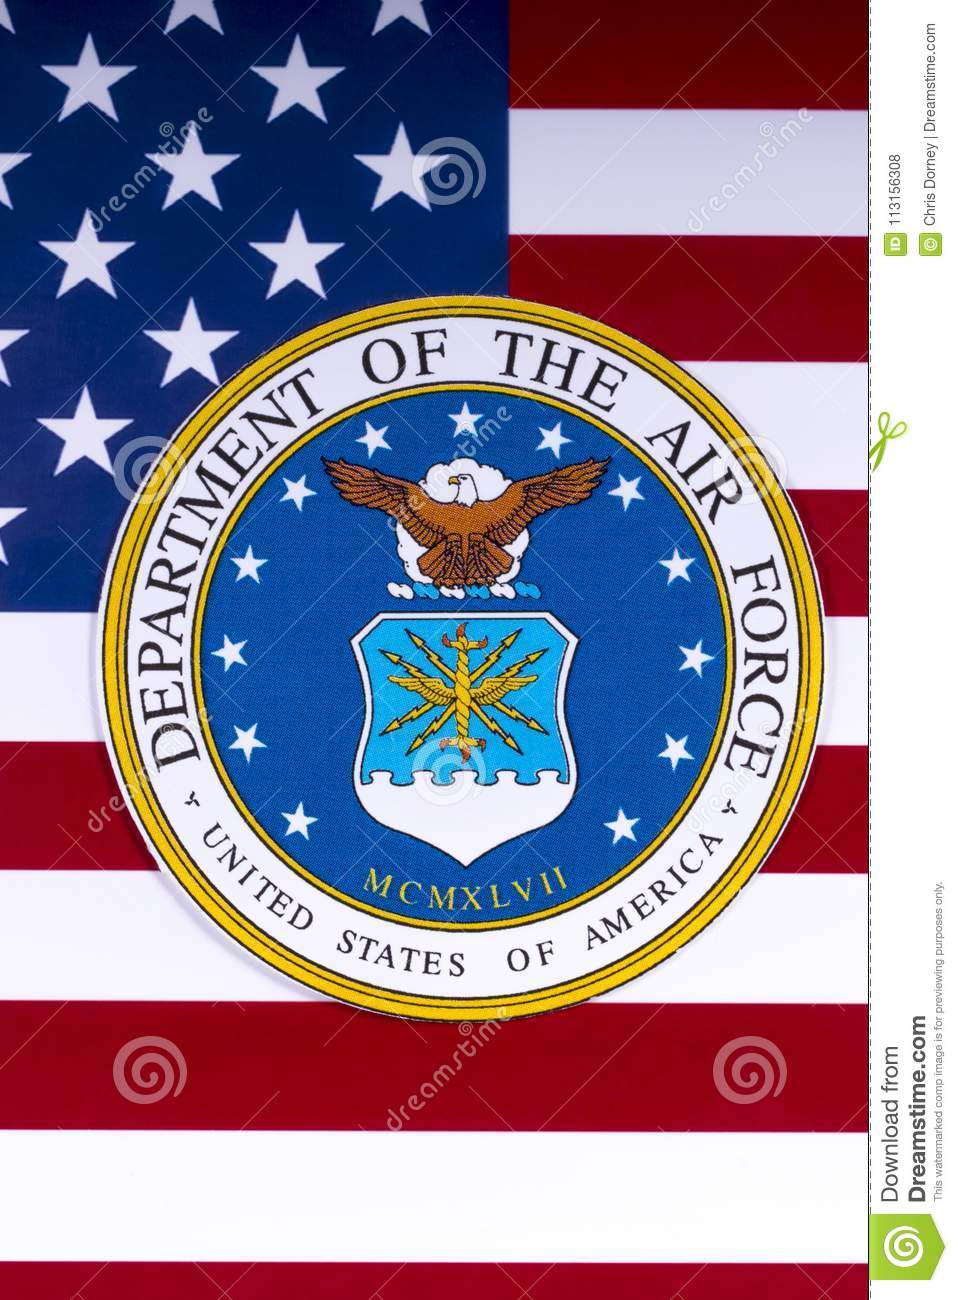 Department Of The Air Force And The Us Flag Editorial Stock Photo